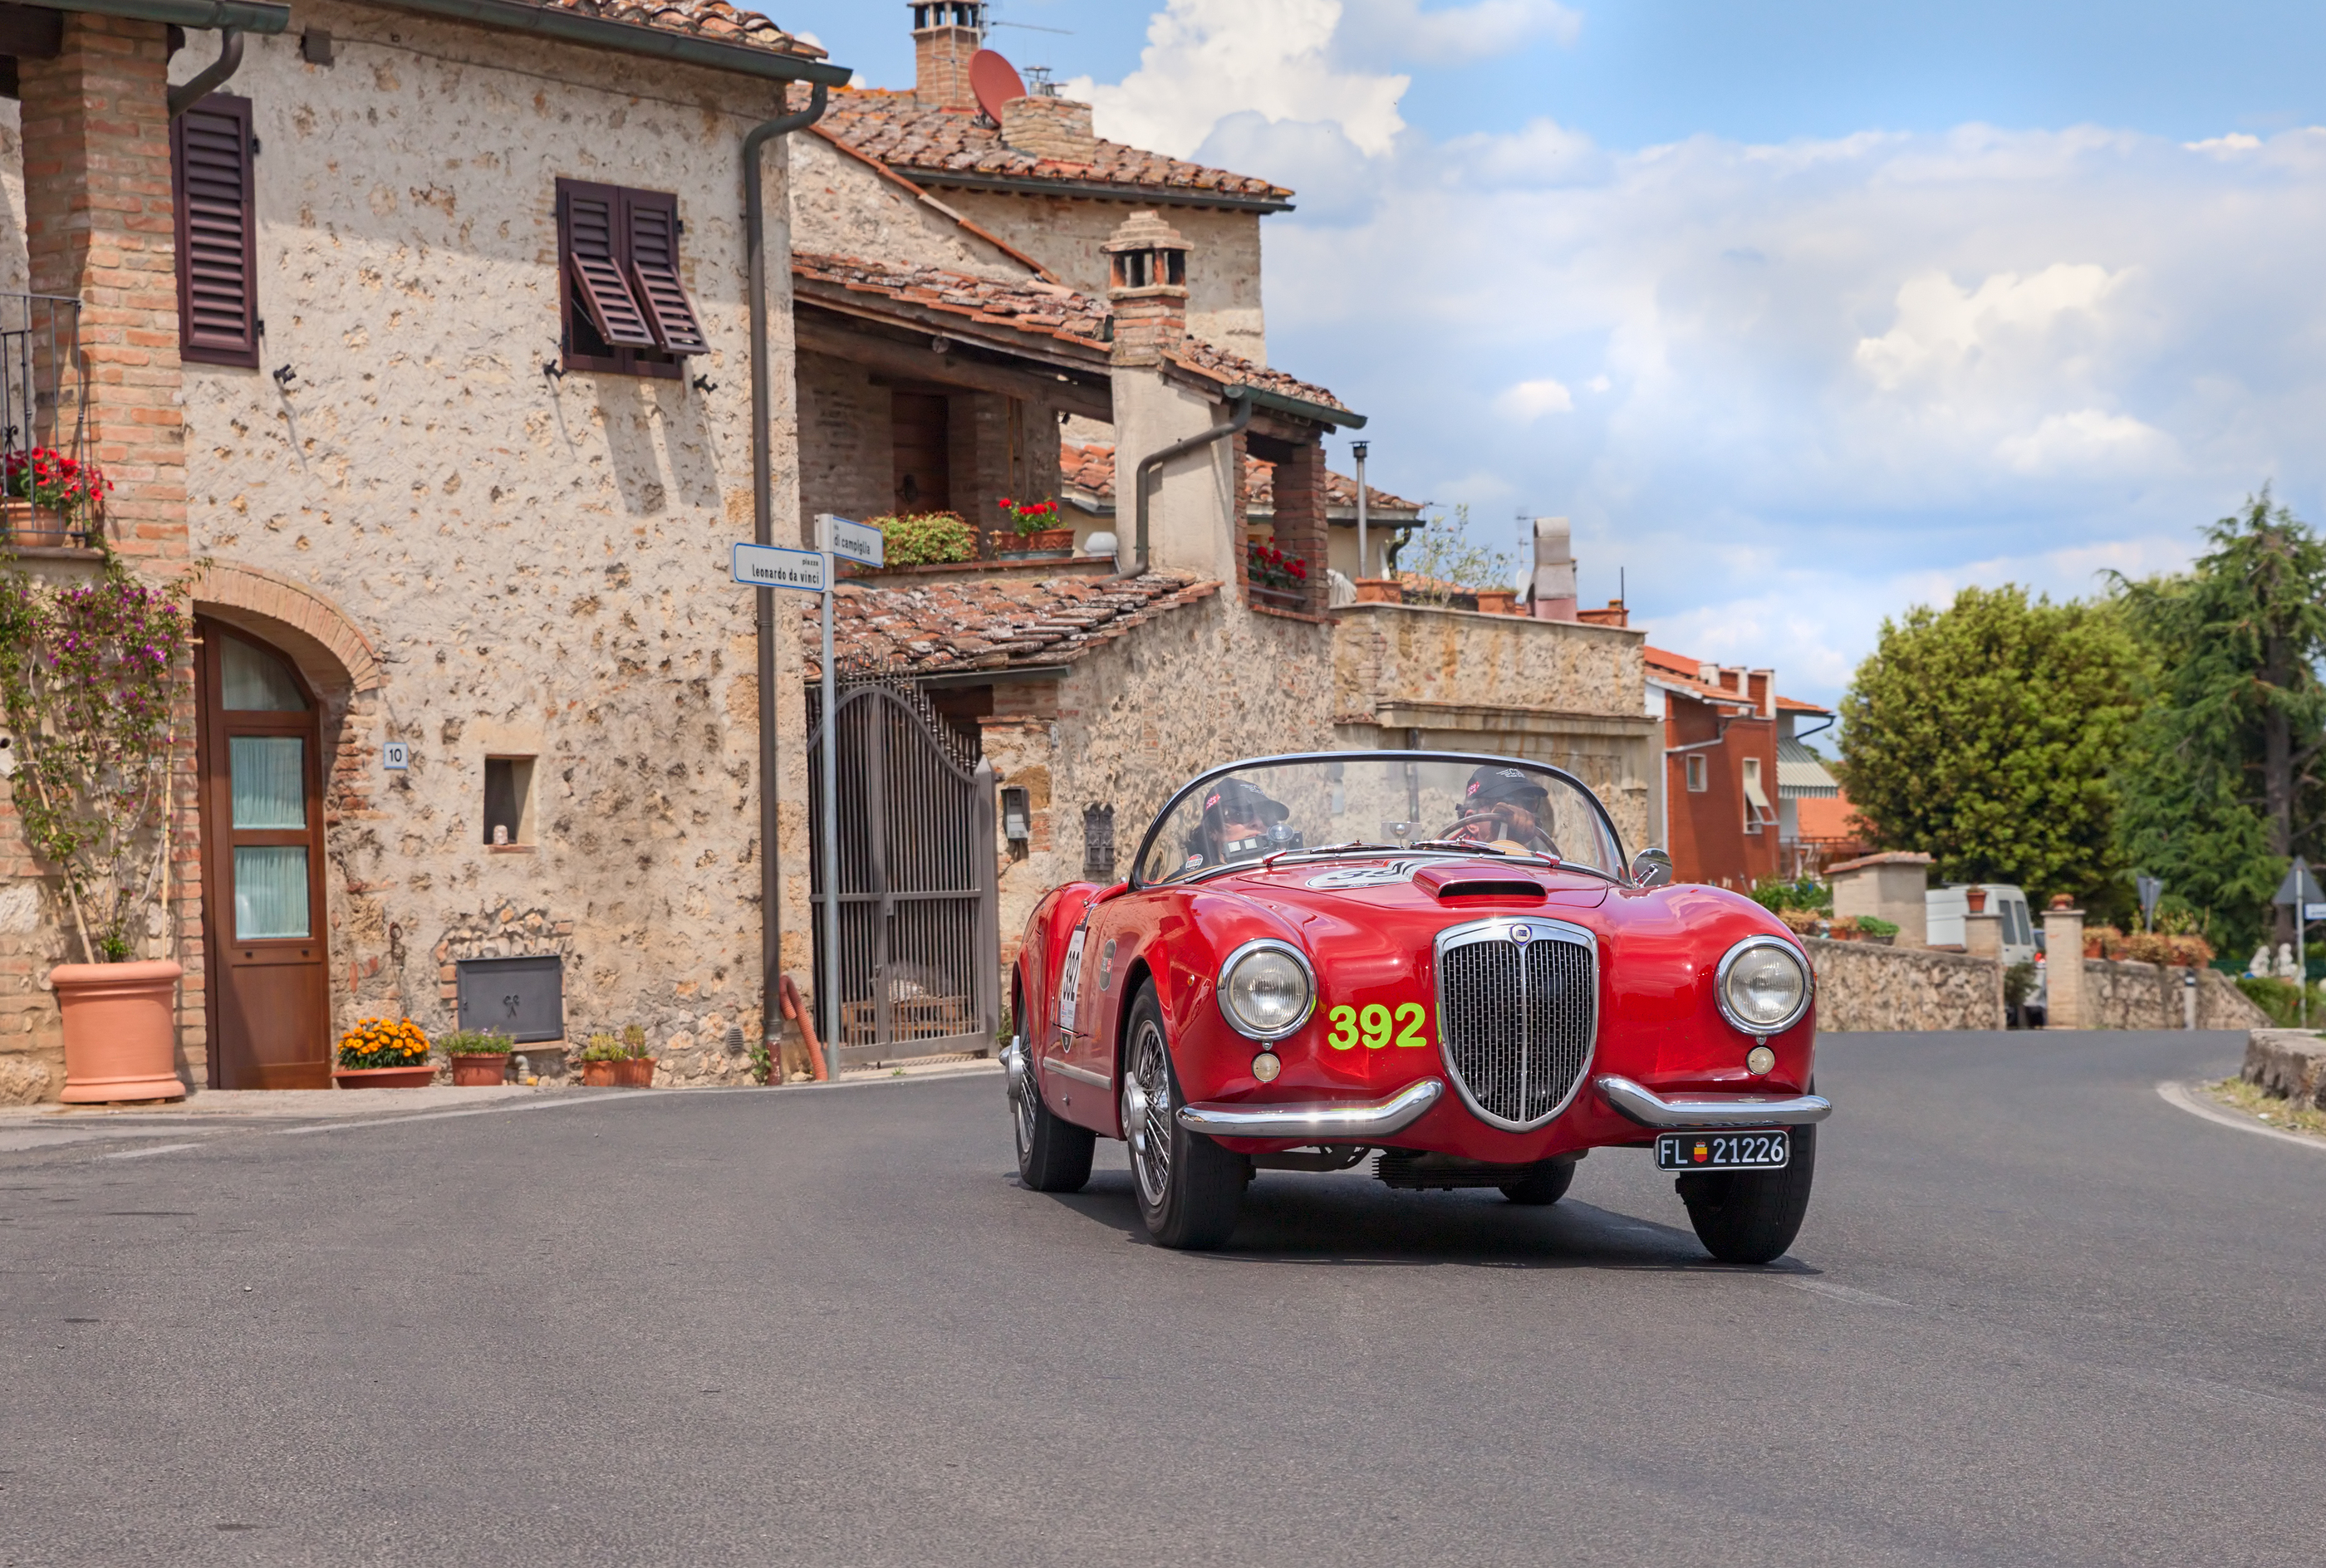 Renting Classic Cars In Italy